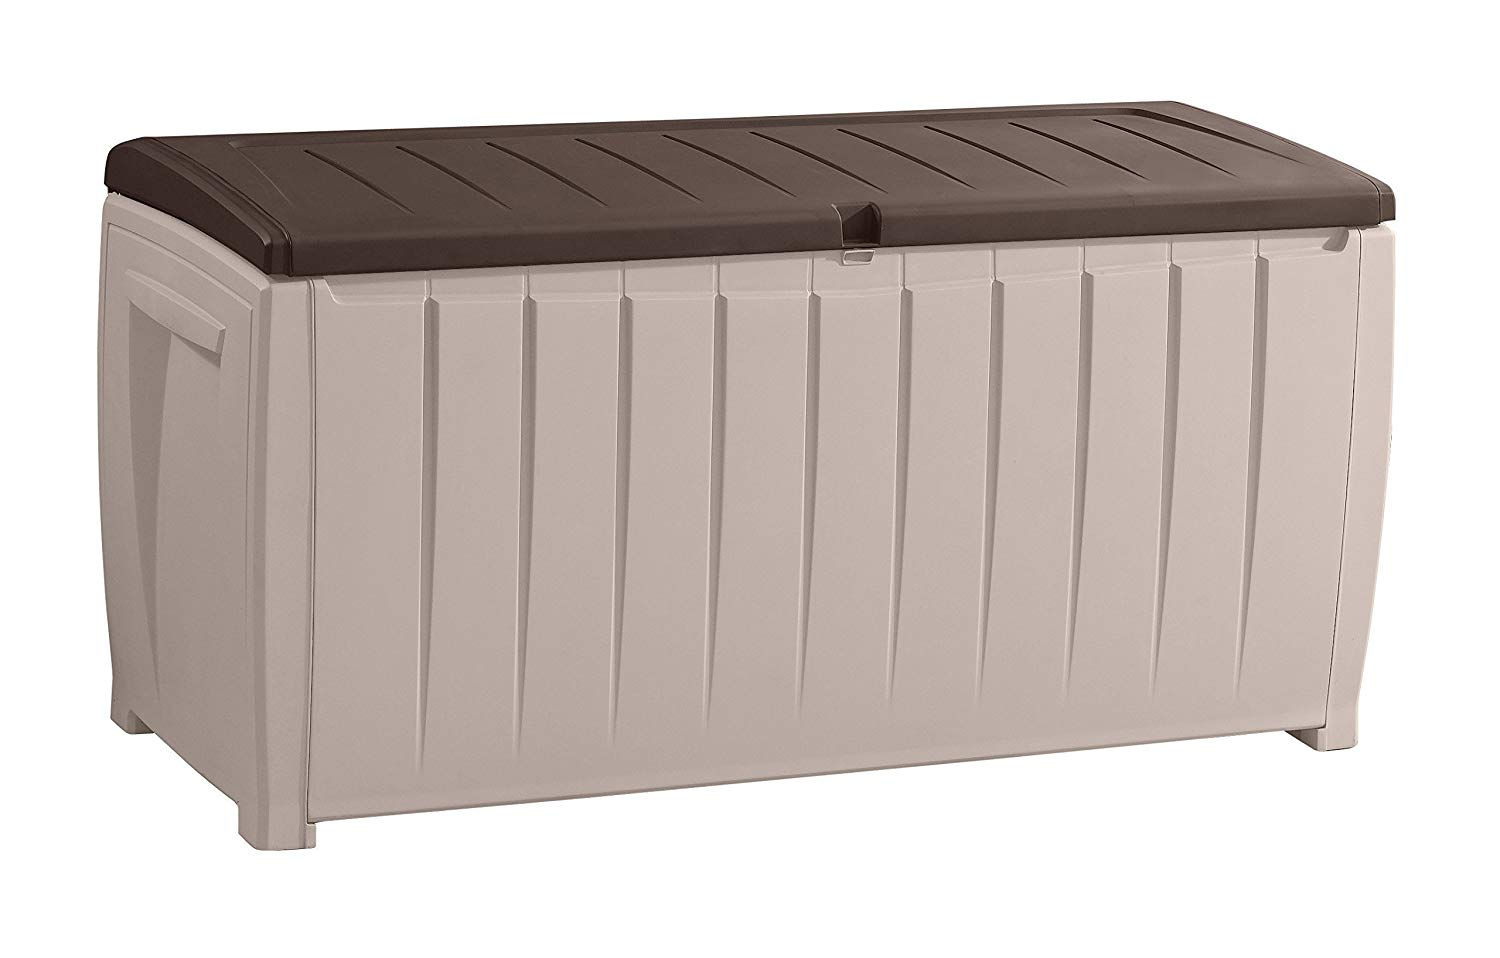 90 Gal Deck Storage Container Box $54.99 (Reg. $89.99) + Free Shipping